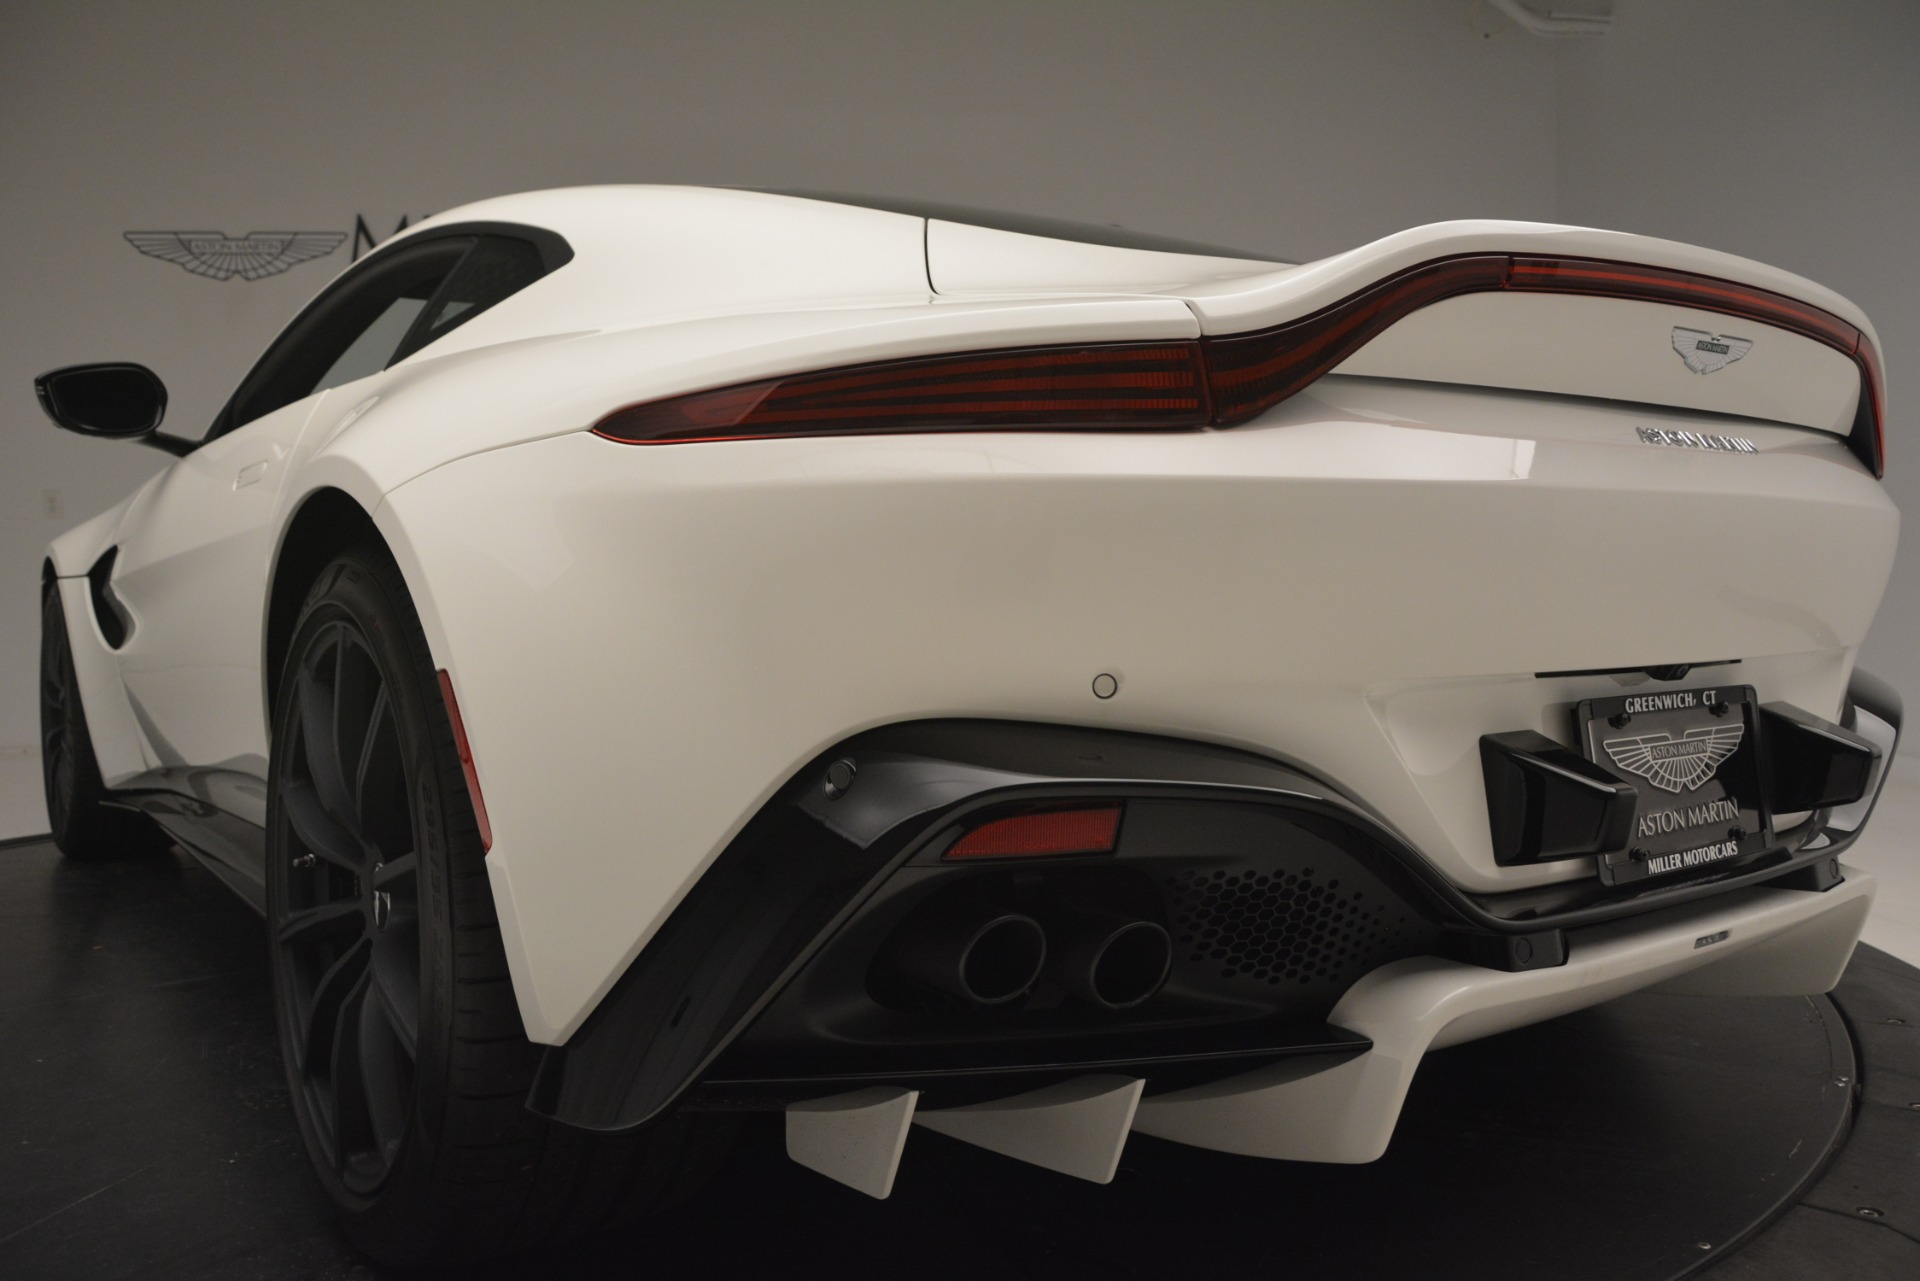 New 2019 Aston Martin Vantage V8 For Sale In Westport, CT 3053_p21